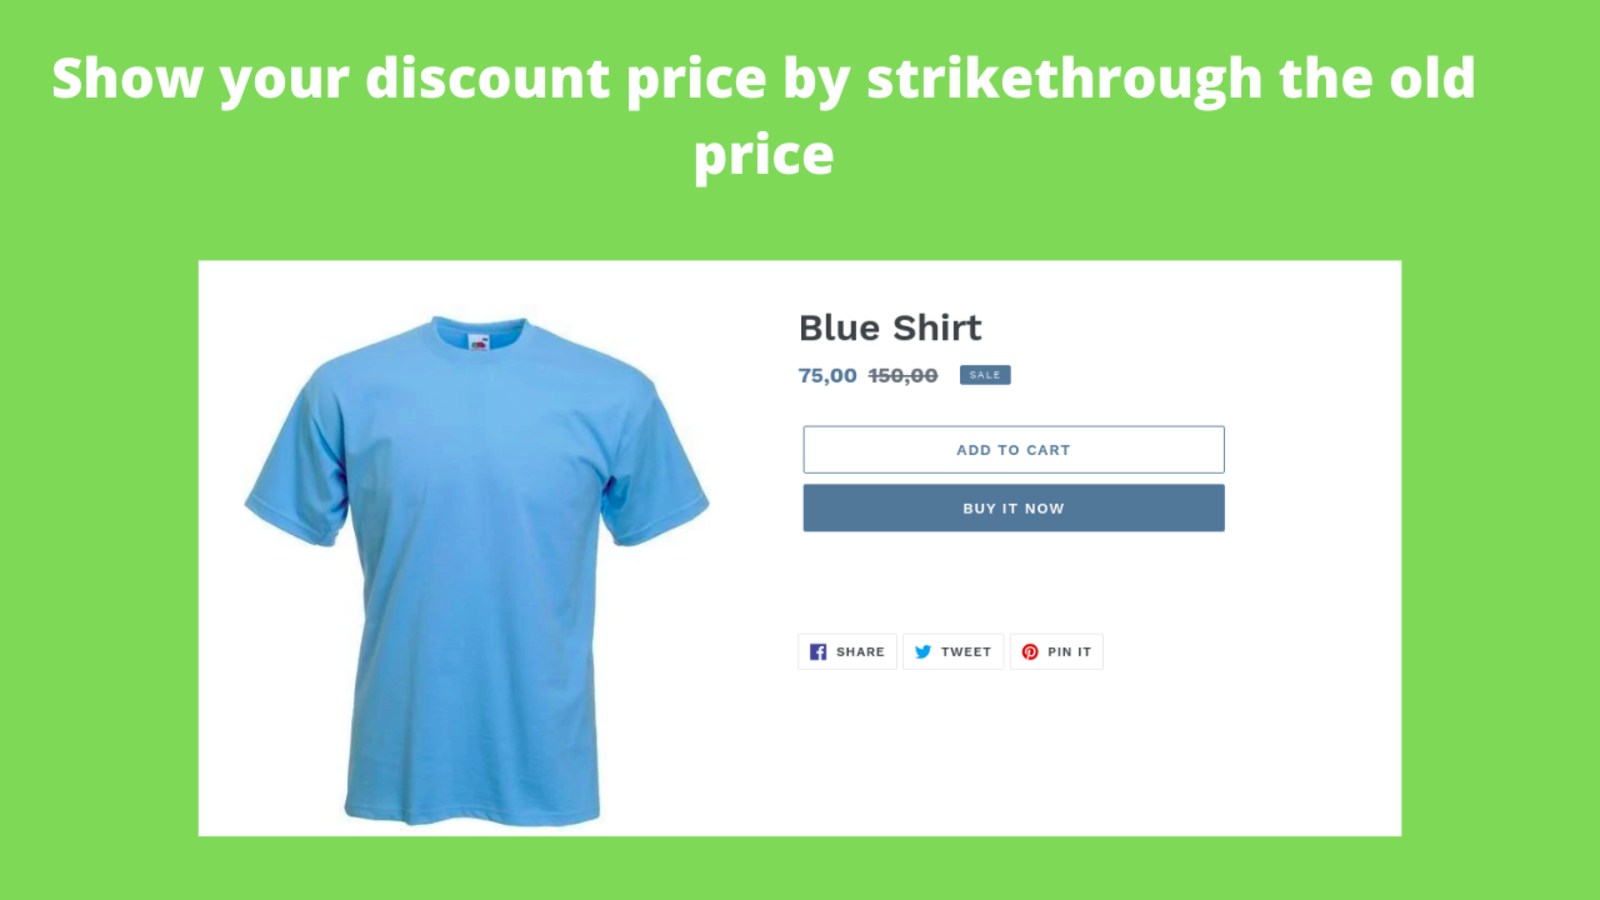 show your discount price by strike-through the old price